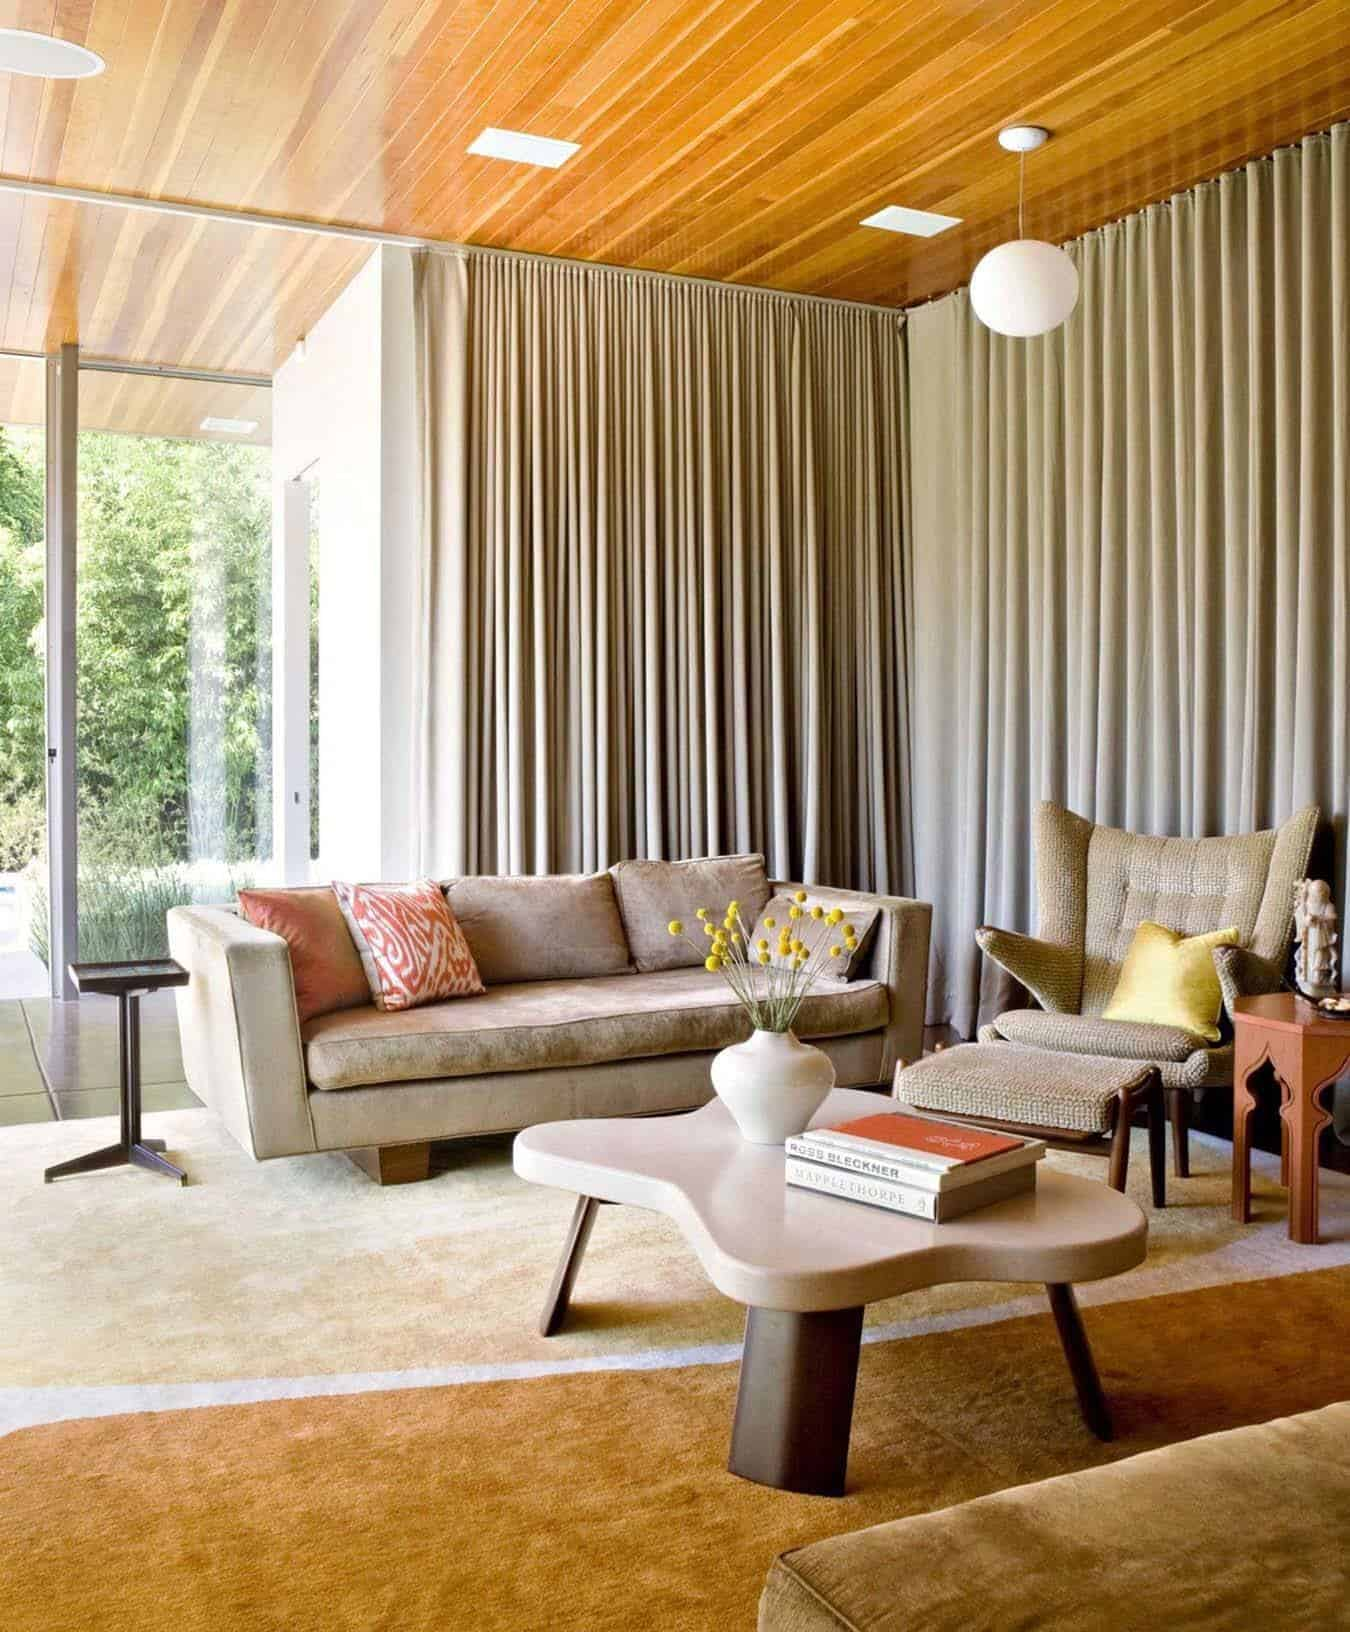 Mid Century Modern Home Designs: Playfully Designed Mid-century Ranch House In Brentwood